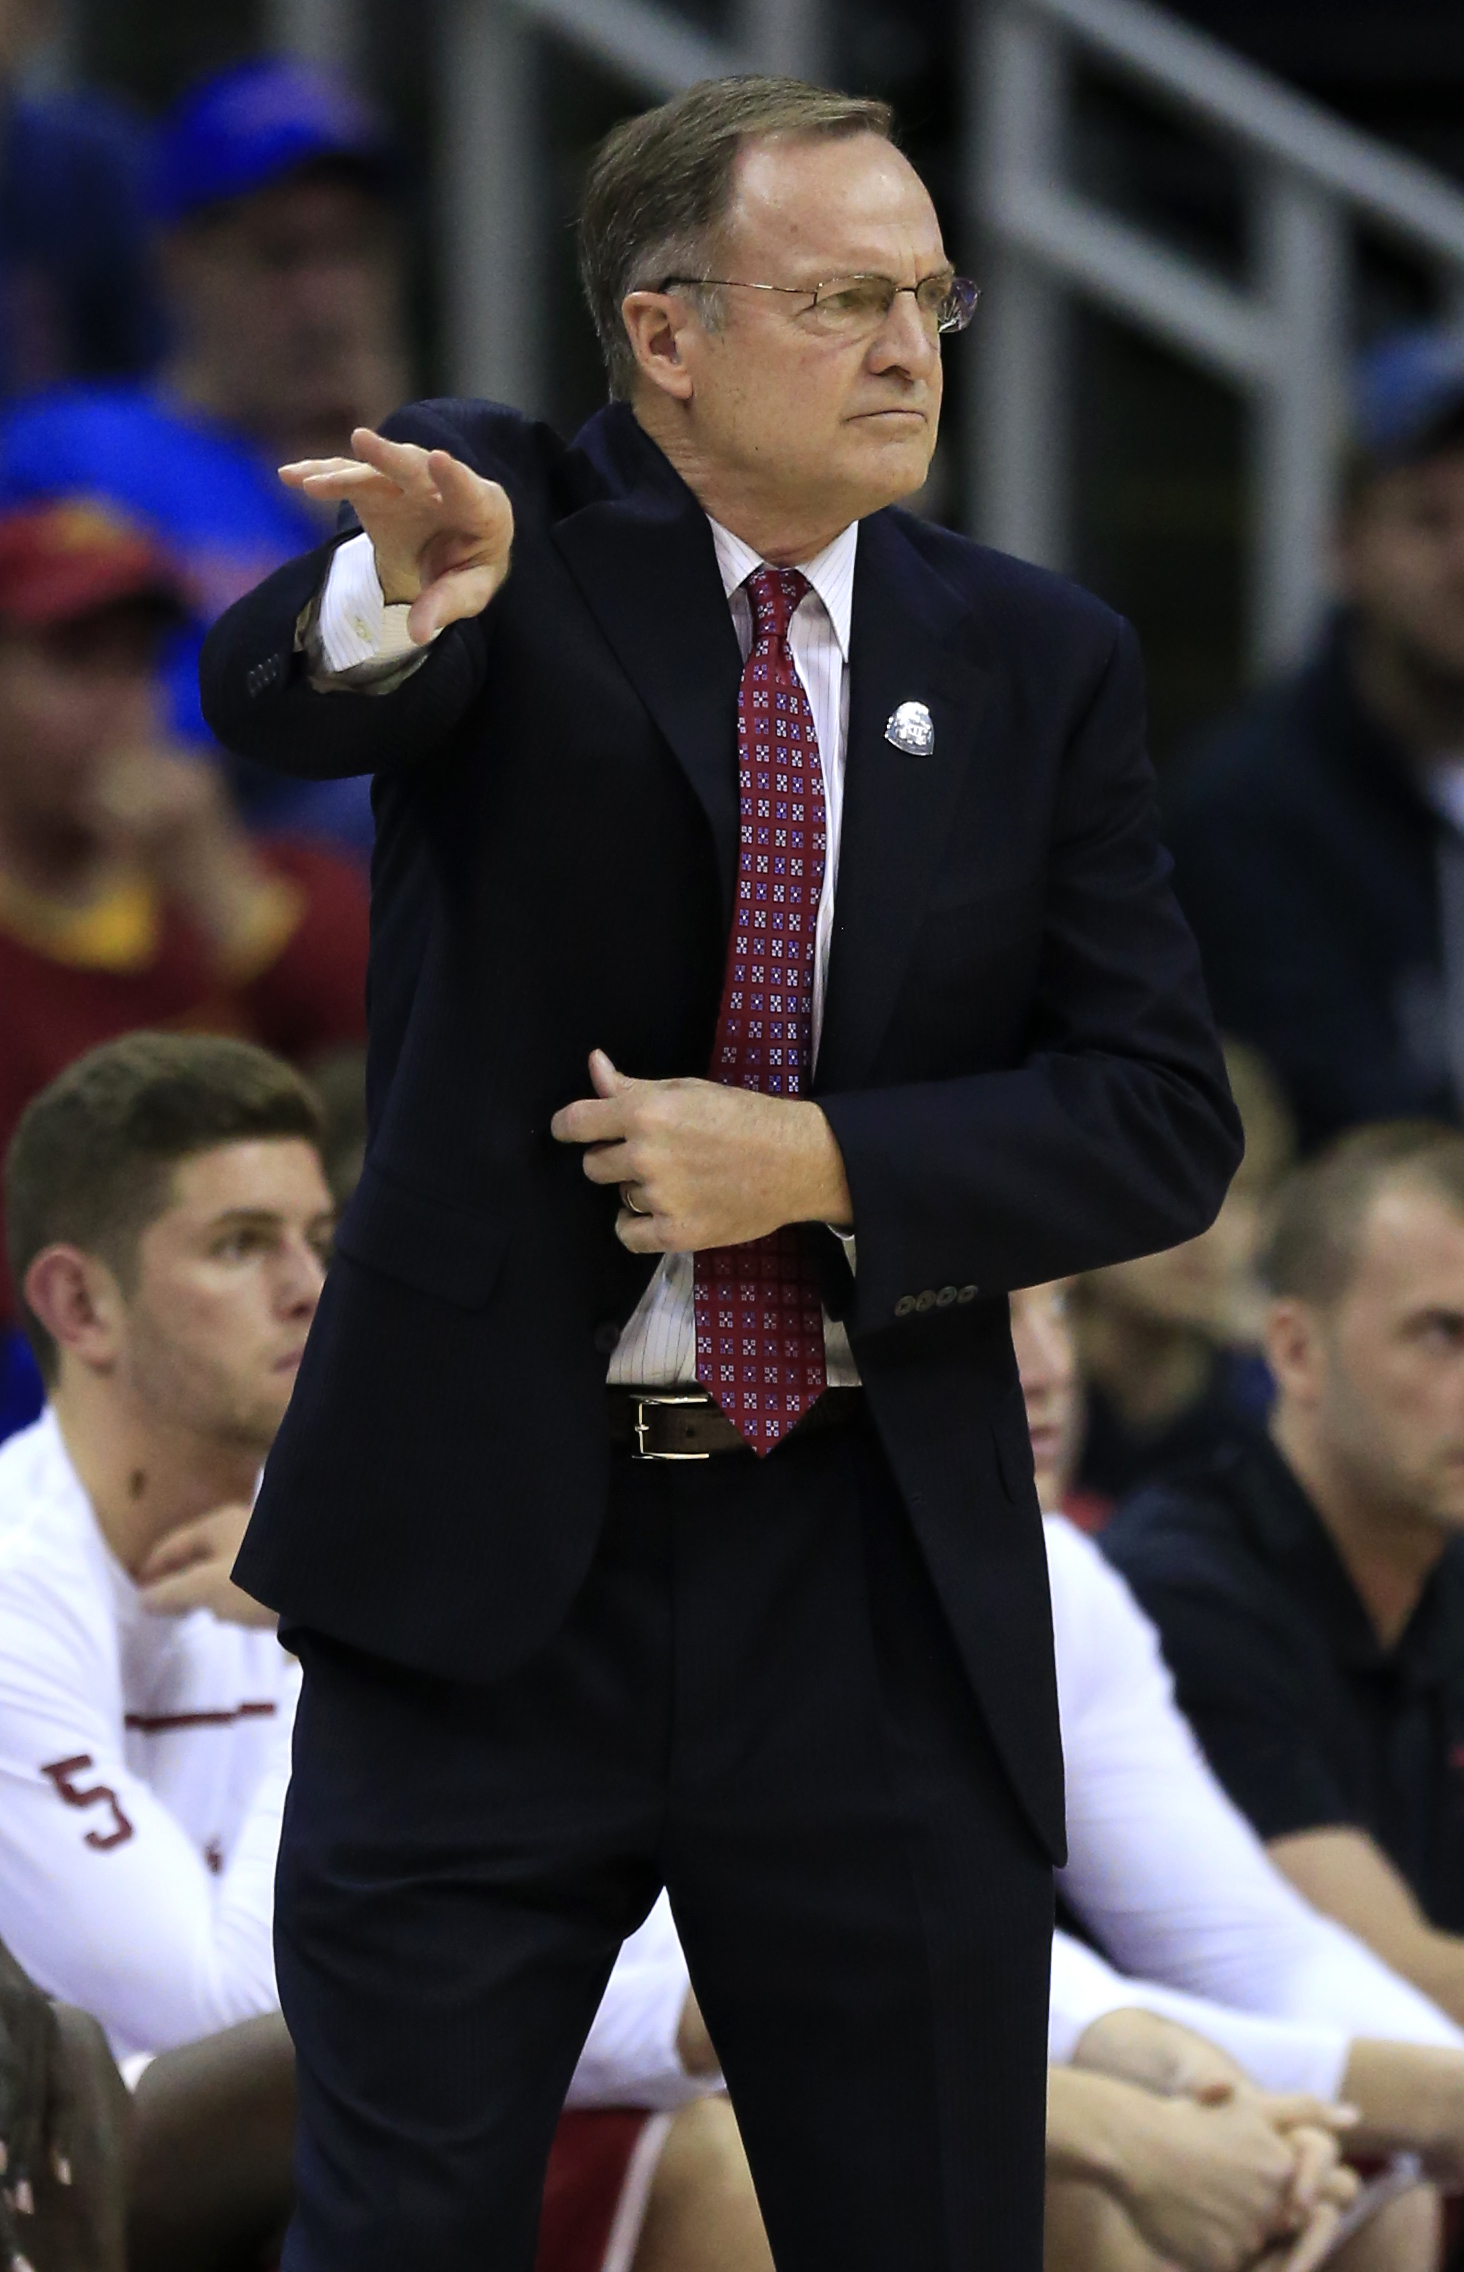 Oklahoma head coach Lon Kruger directs his team during the first half of an NCAA college basketball game against West Virginia in the semifinals of the Big 12 conference tournament in Kansas City, Mo., Friday, March 11, 2016. (AP Photo/Orlin Wagner)